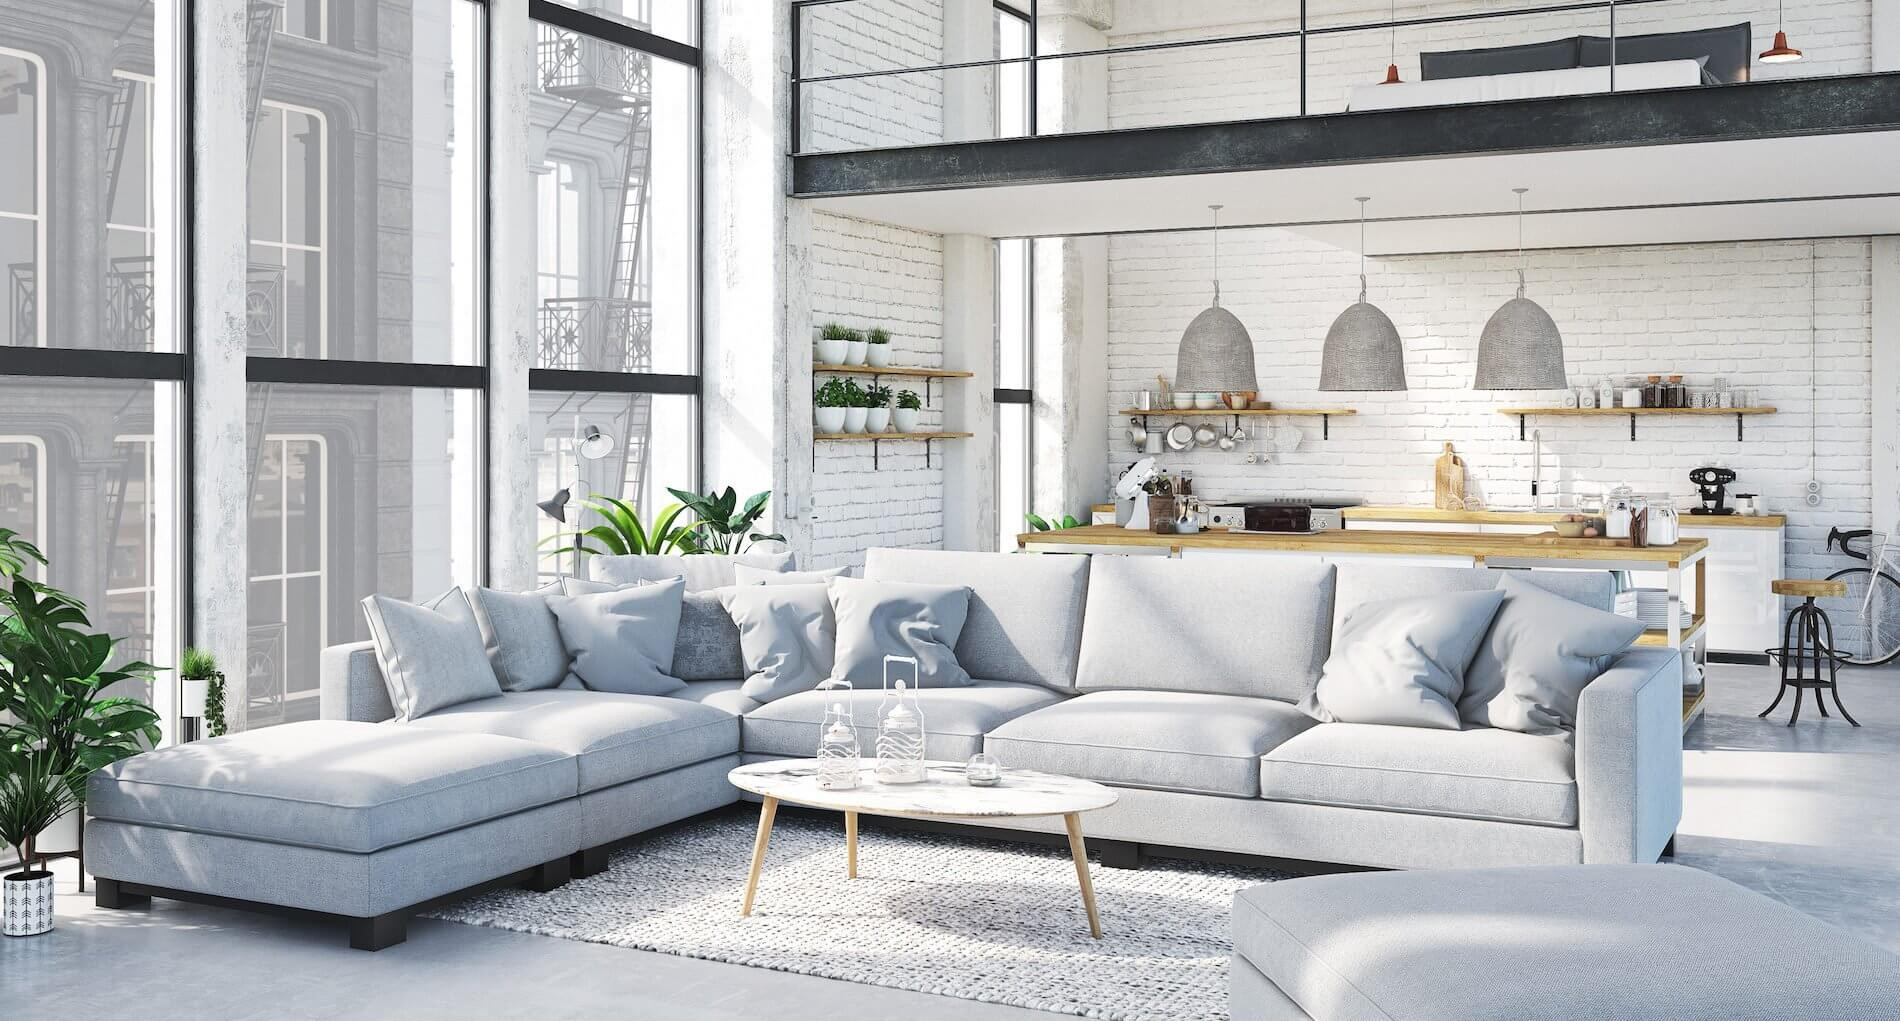 10 Steps to Take When Renovating Your Condo